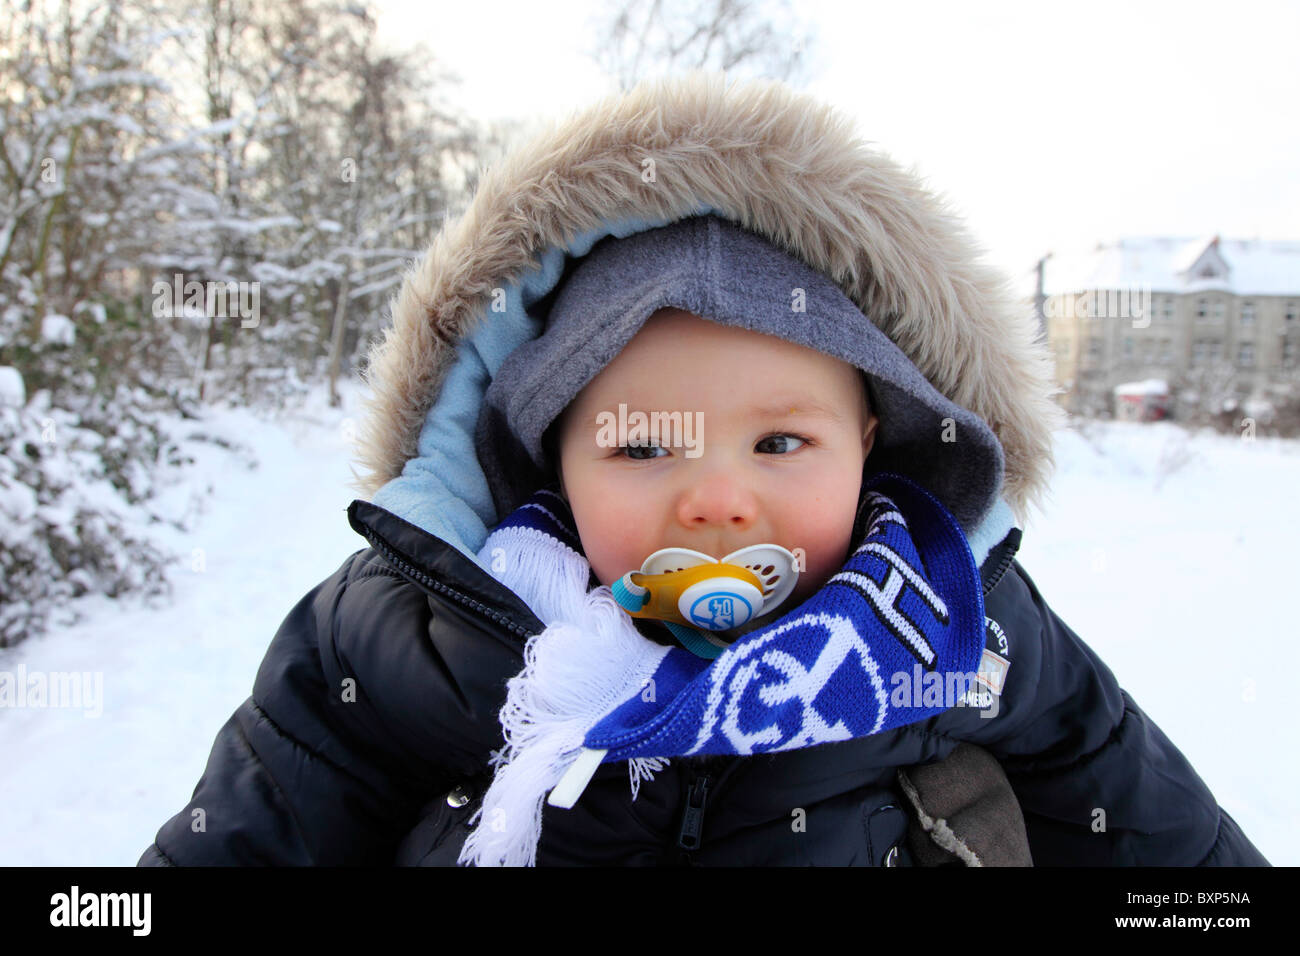 6 month old little boy on the back of his mother, on a walk  in winter, snow, smiling, looking happy and friendly. - Stock Image